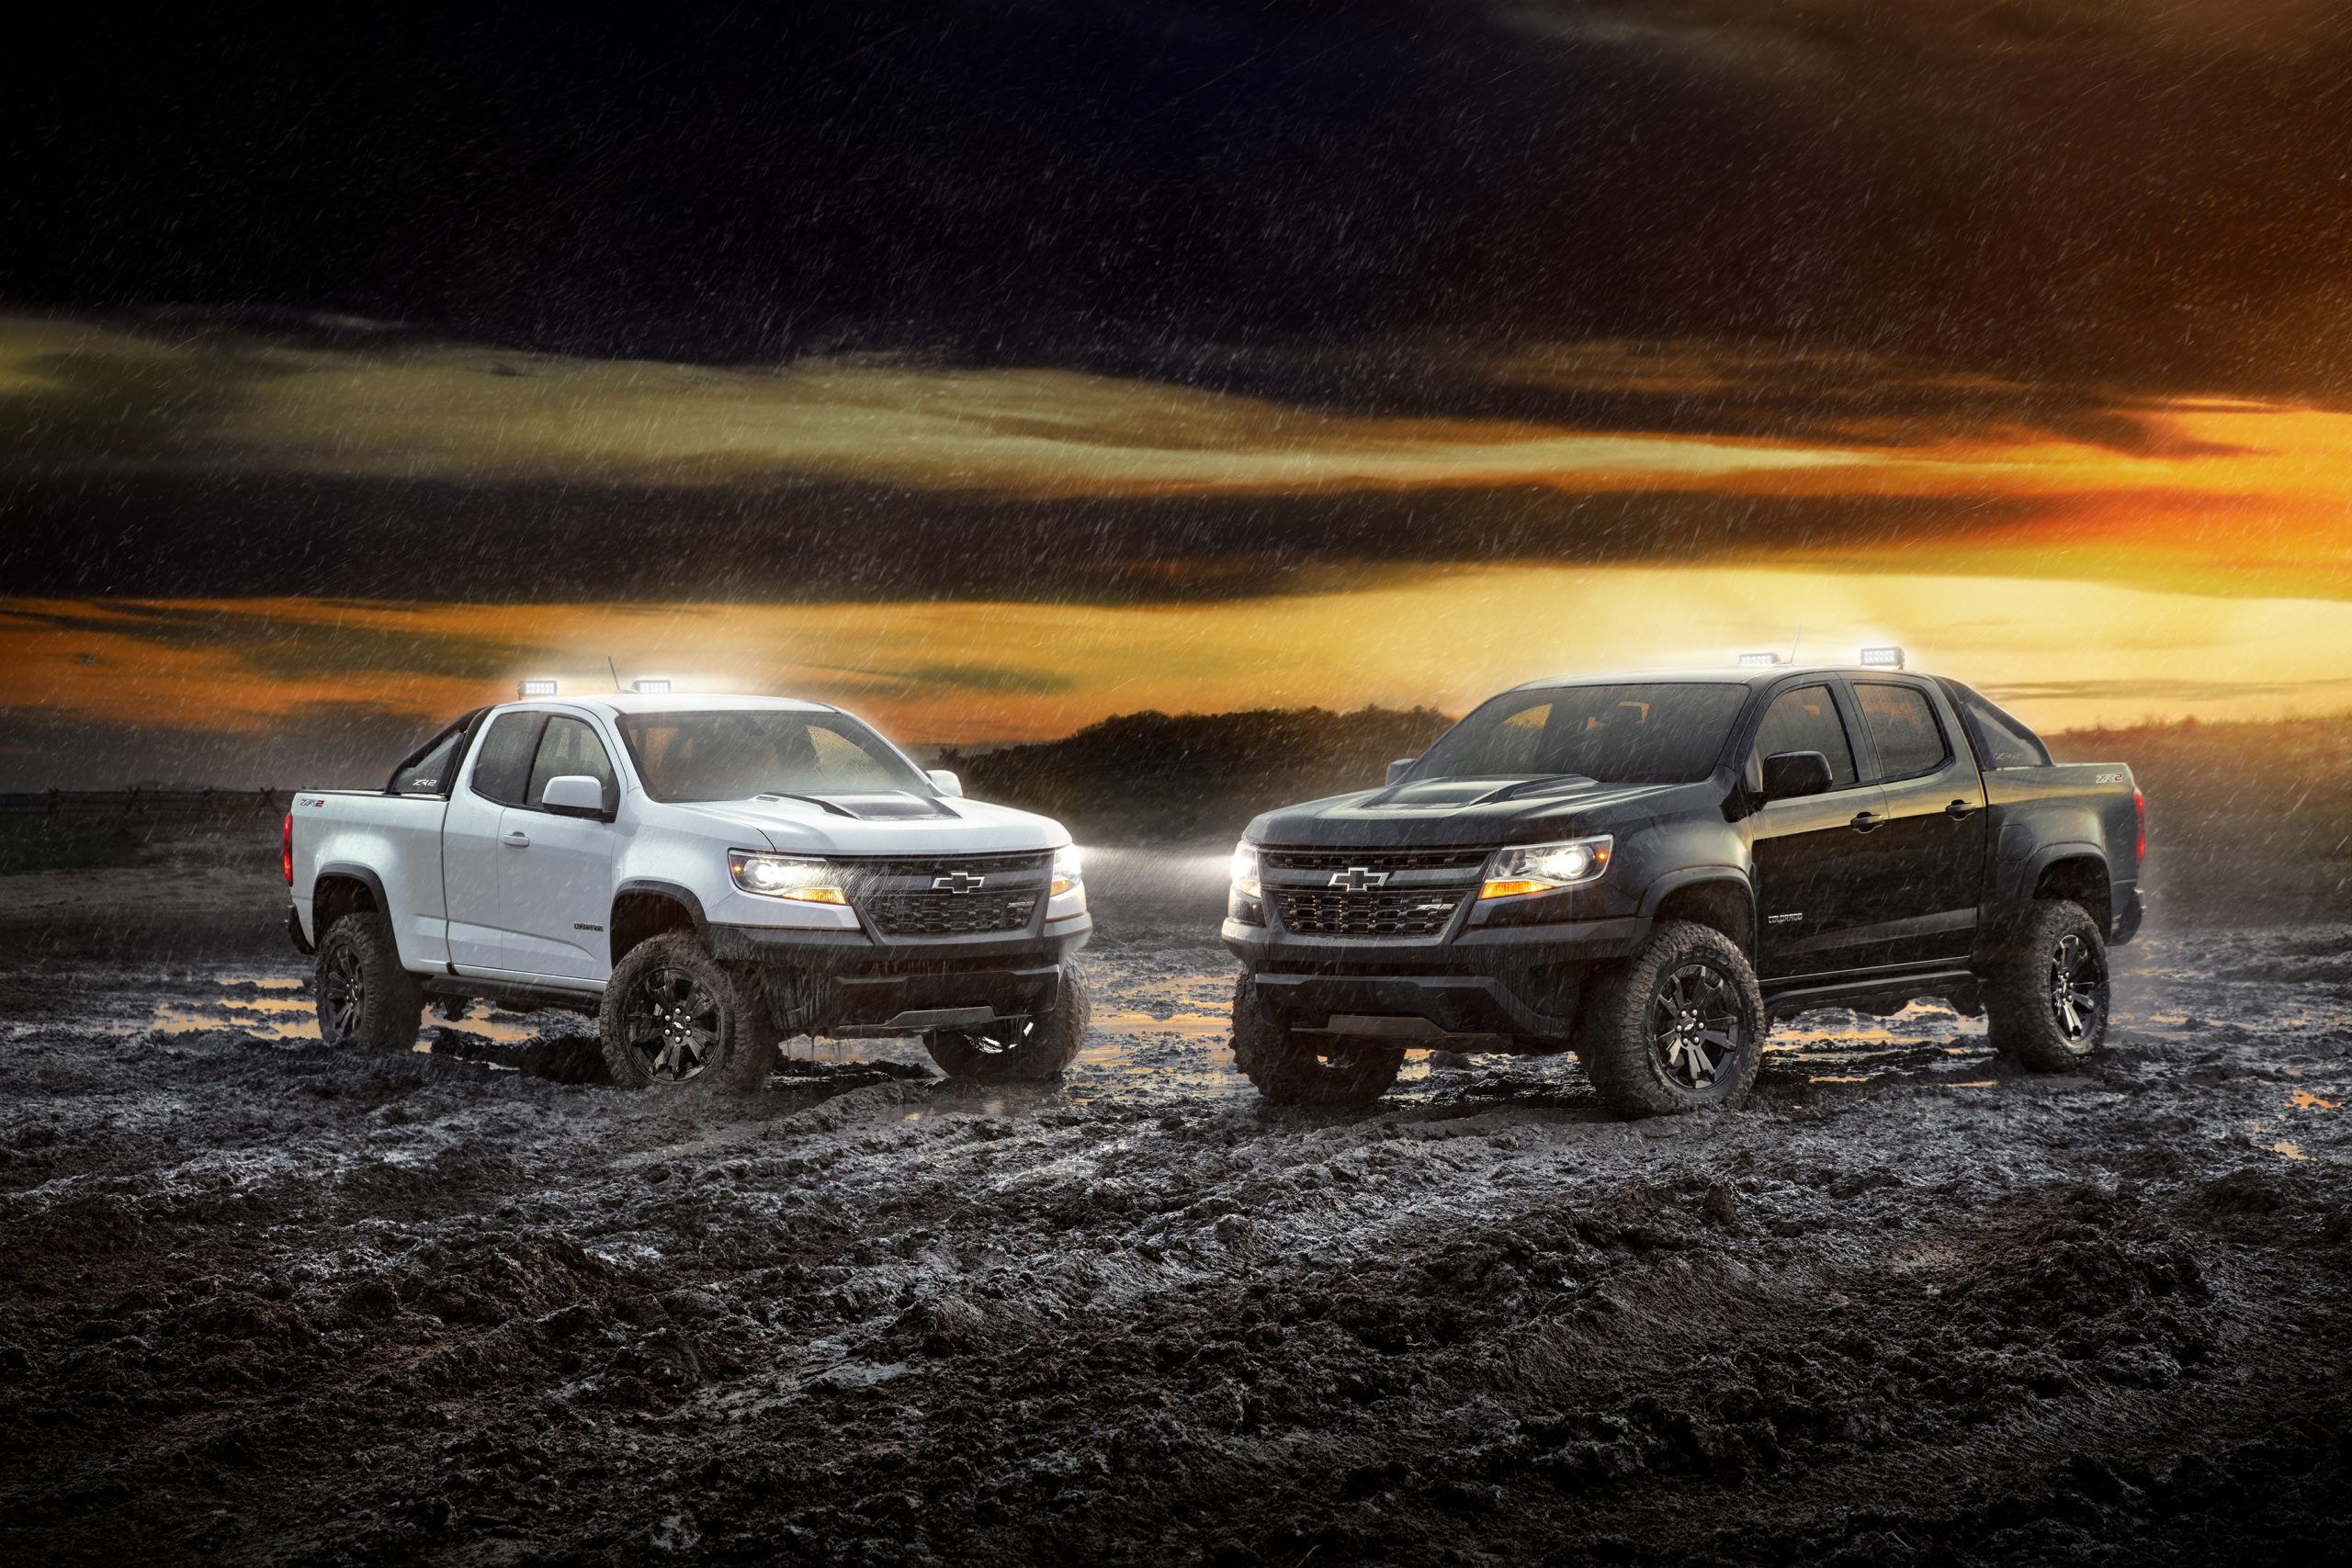 Zr2 Midnight And Dusk Editions Expand Choices In 2018 Bed Liner For 2021 Chevy Colorado Crew Cab